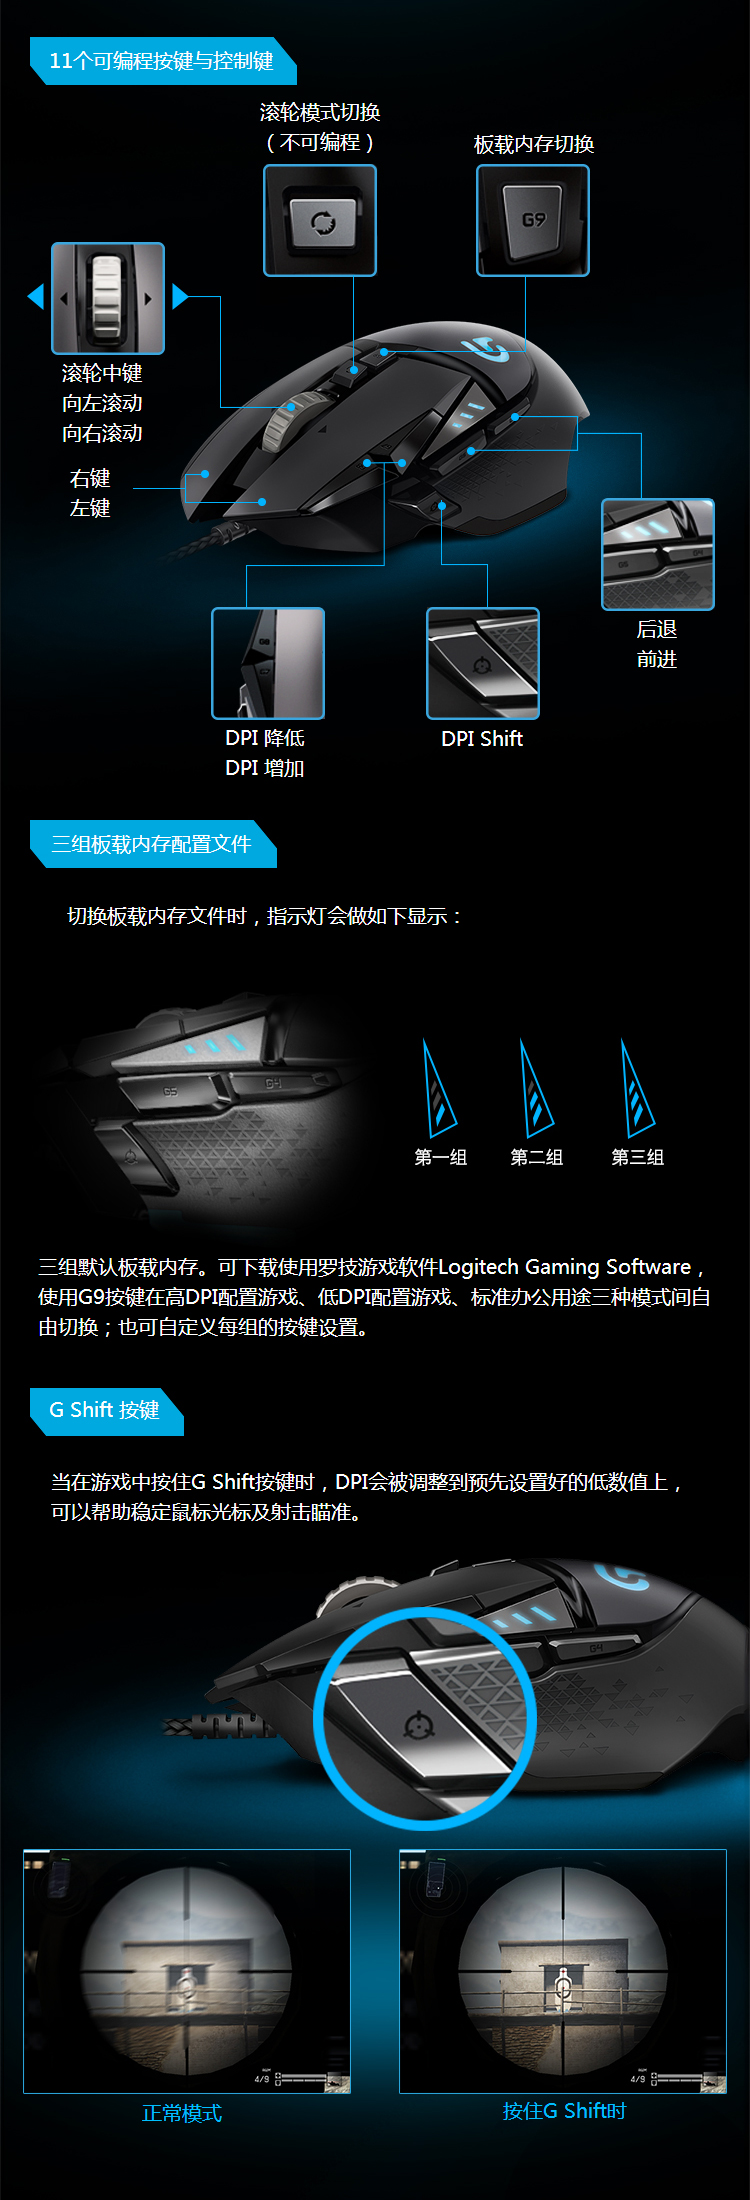 Logitech GG502 glare gaming mouse RGB mouse FPS mouse eating chicken mouse  Jedi survival G502 mouse + G610 keyboard red axis